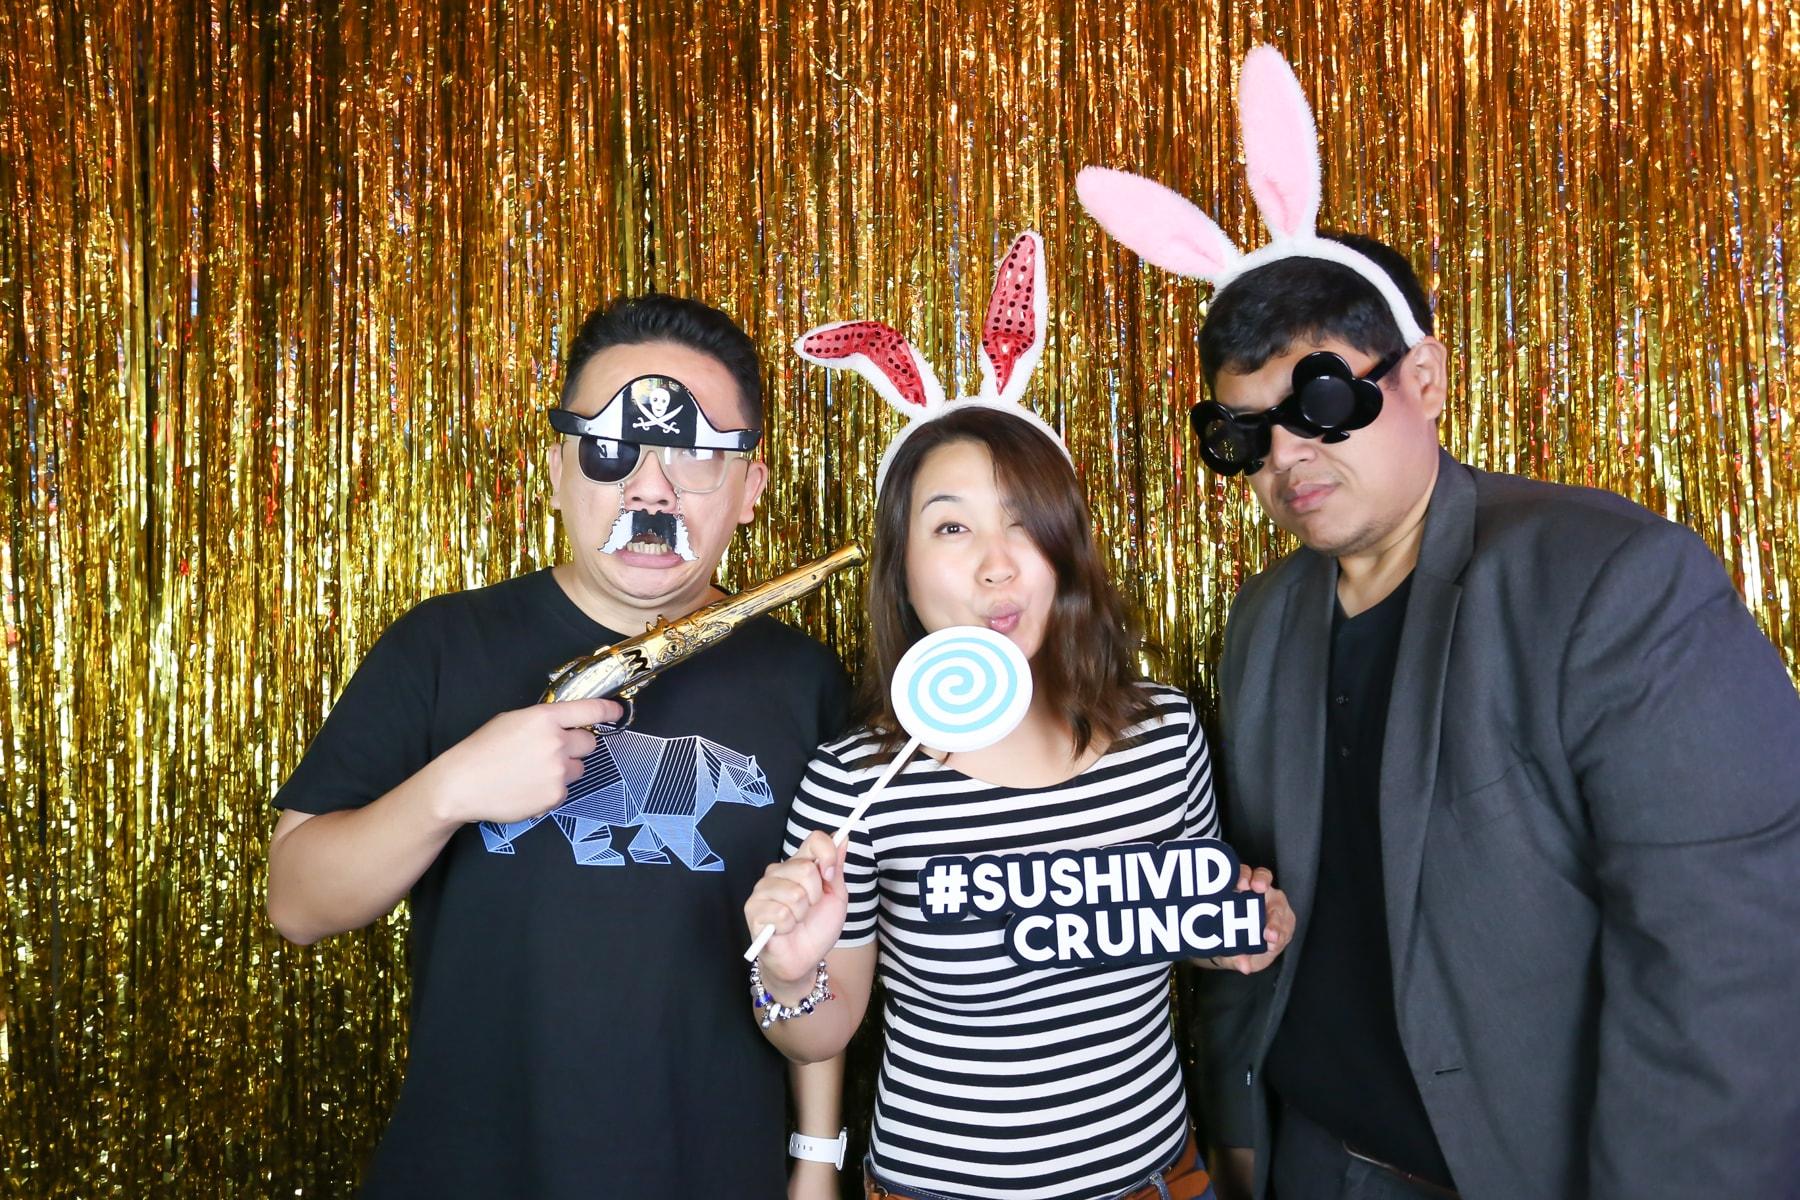 Sushivid+crunch+tagbooth+169